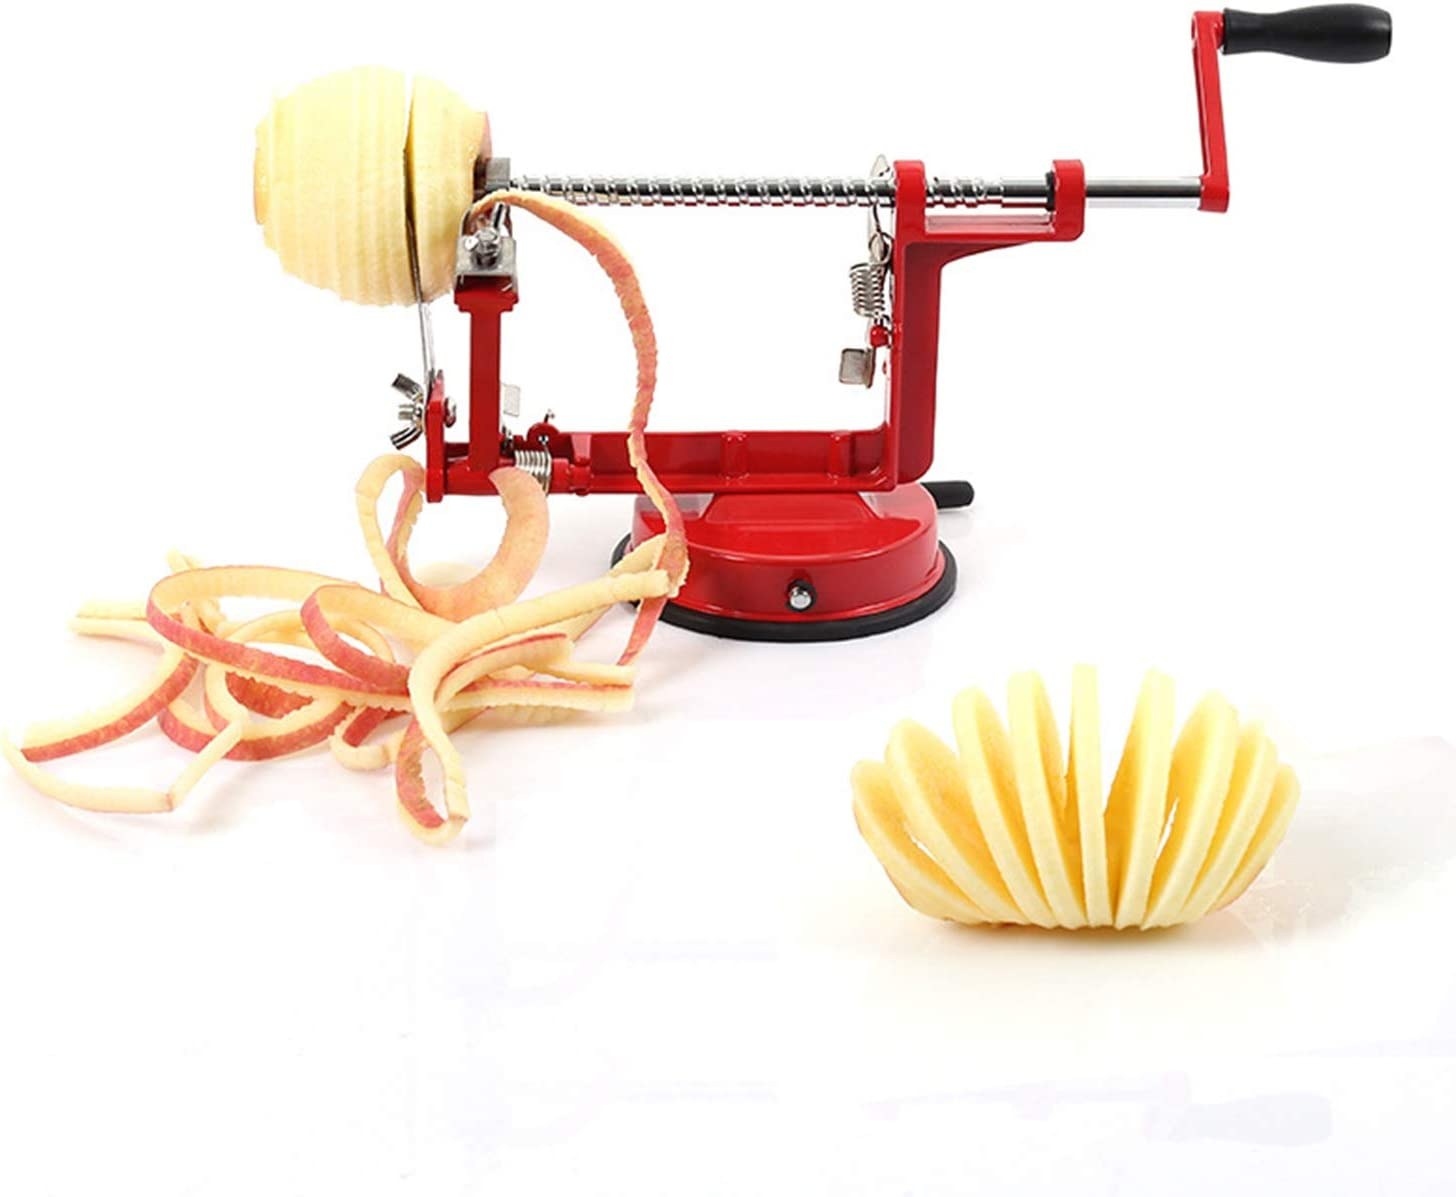 Apple Peeler ULIOLI Apple Corer Slicer Peeler 3 in 1 Spiralizer with Stainless Steel Blades, Heavy Duty Hand-Cranking Potato Peeler with Suction Base, Red